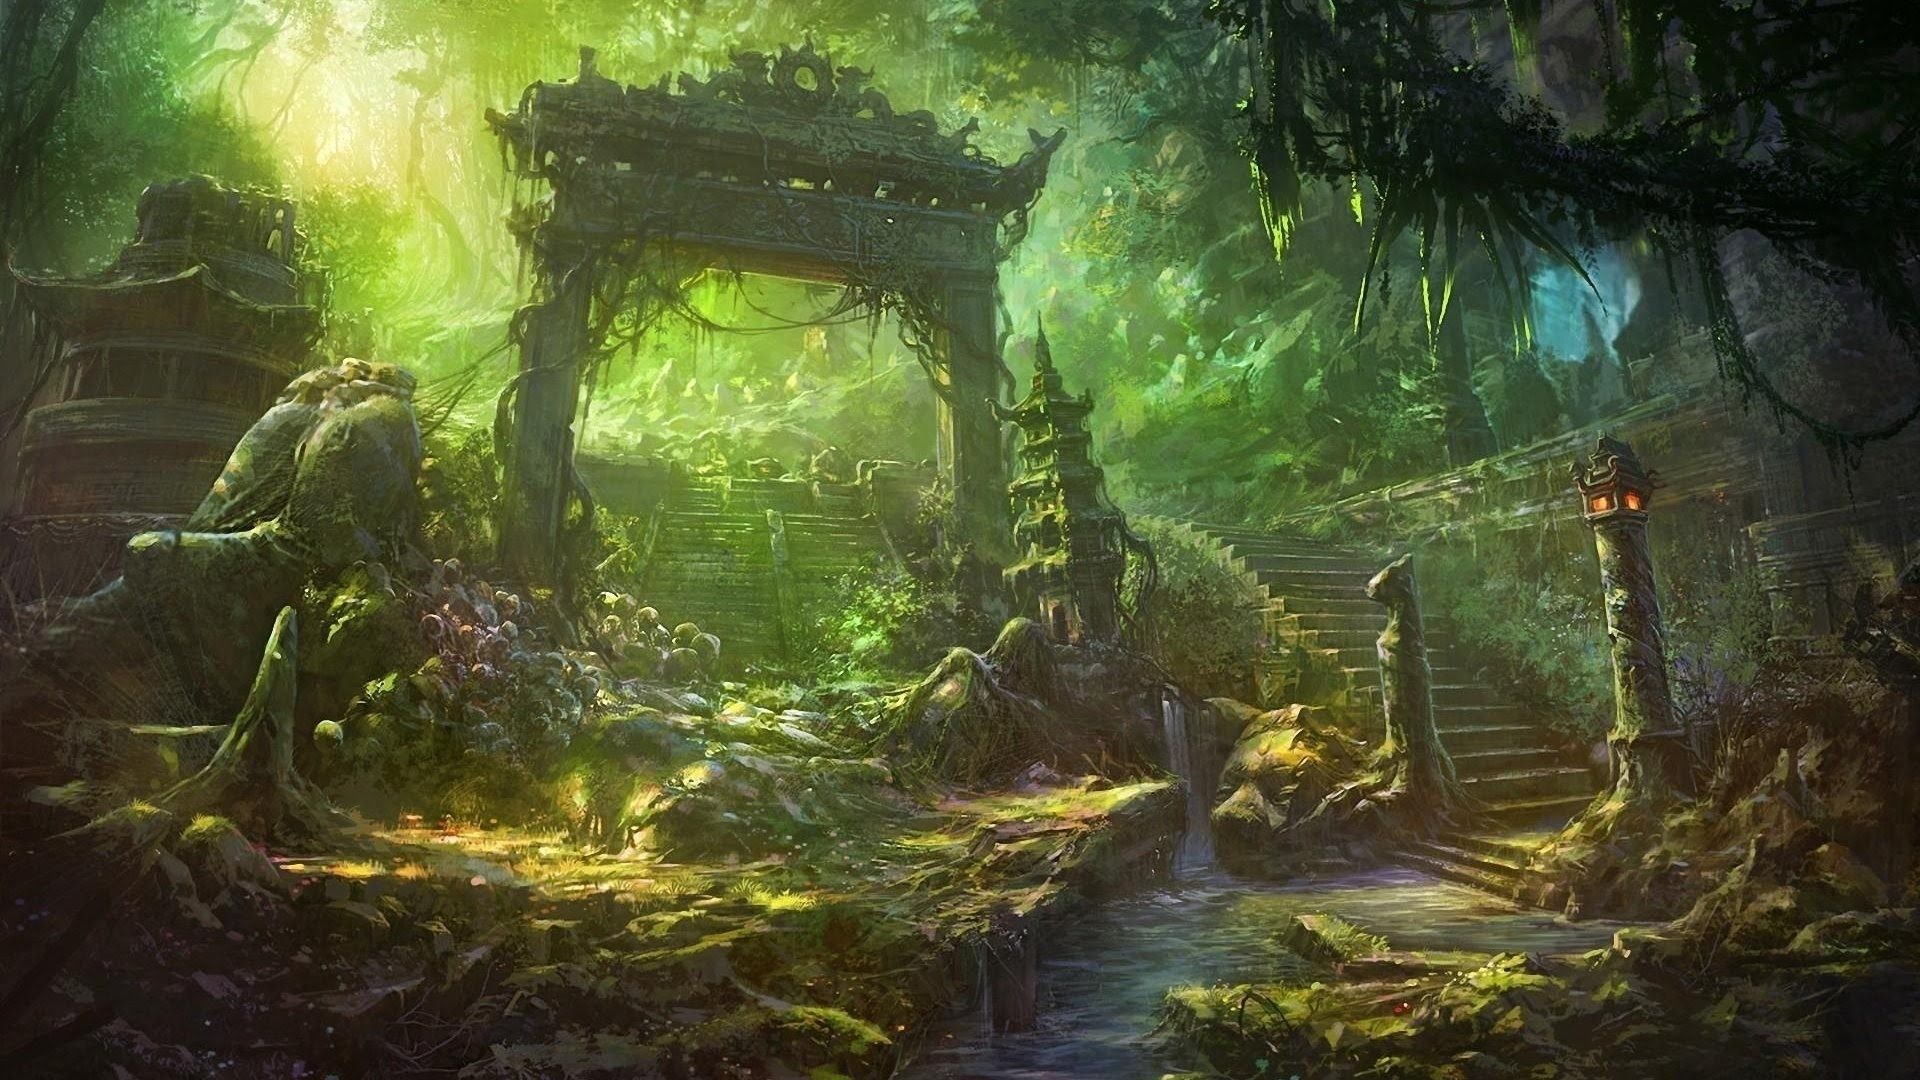 RELAXING Meditation ambient music / Lost Fantasy Temple